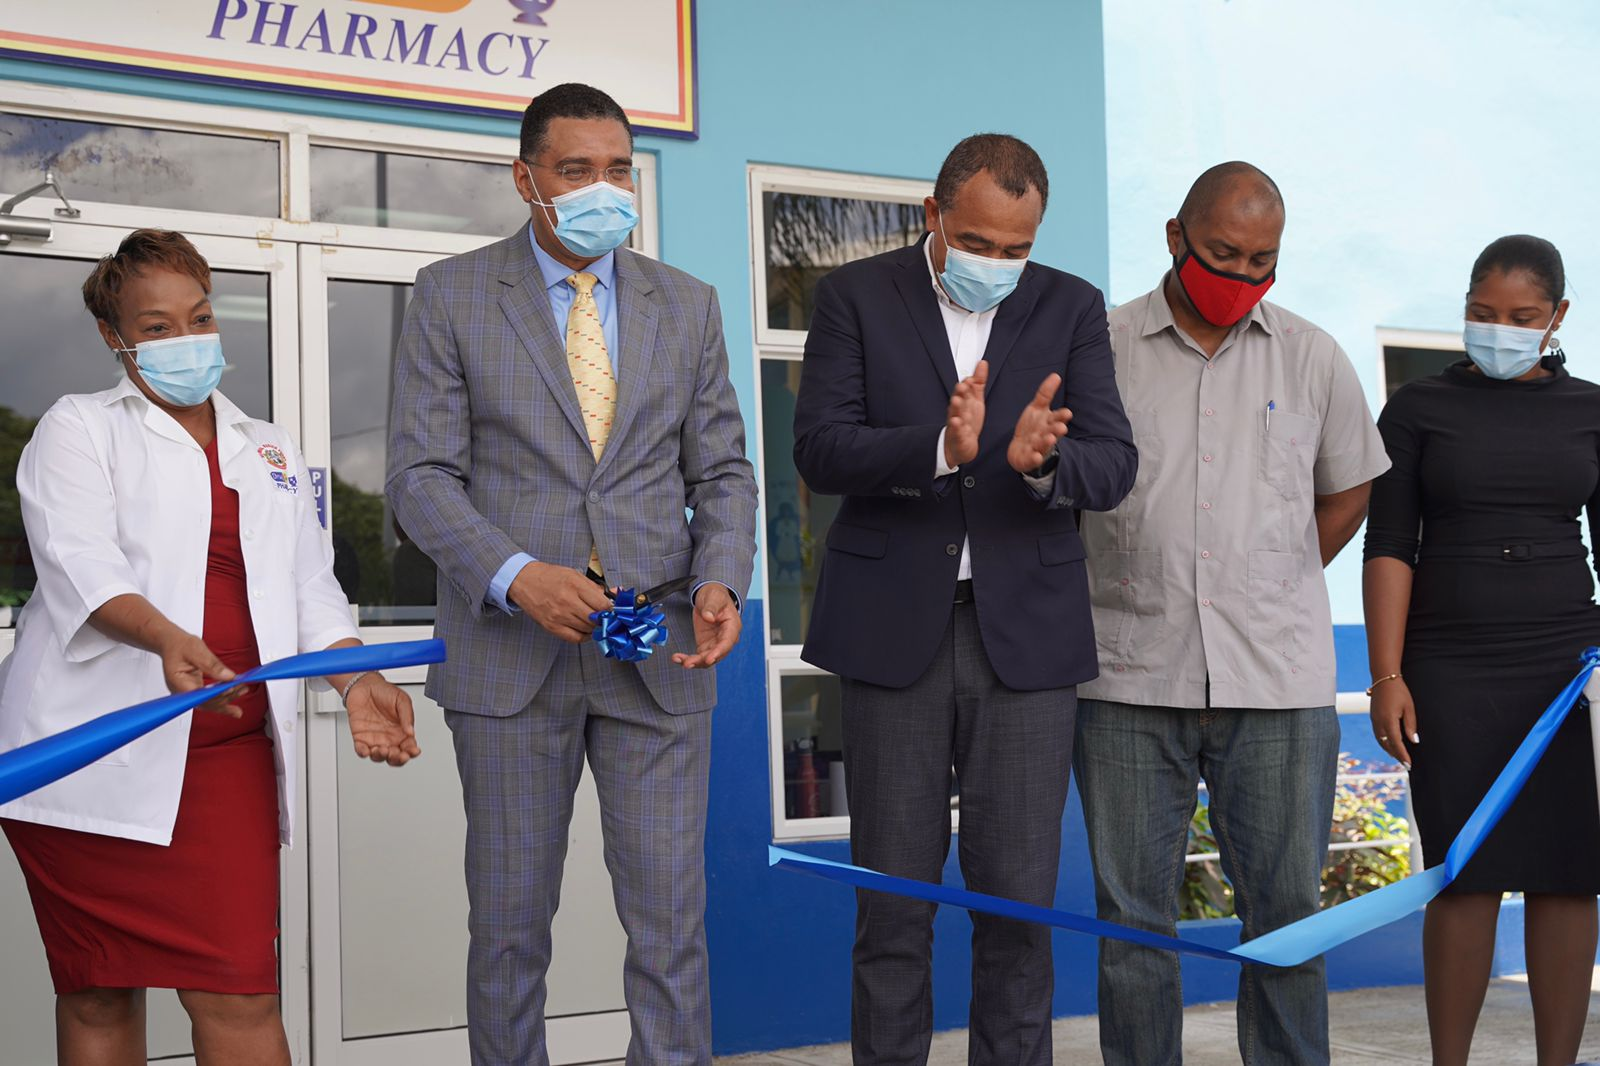 Caption: The Most Honourable Andrew Holness, Prime Minister of Jamaica and Dr. the Honourable Christopher Tufton, Minister of Health and Wellness officially opened the new Drug Serv Pharmacy at the Bustamante Hospital for Children on July 7, 2021.